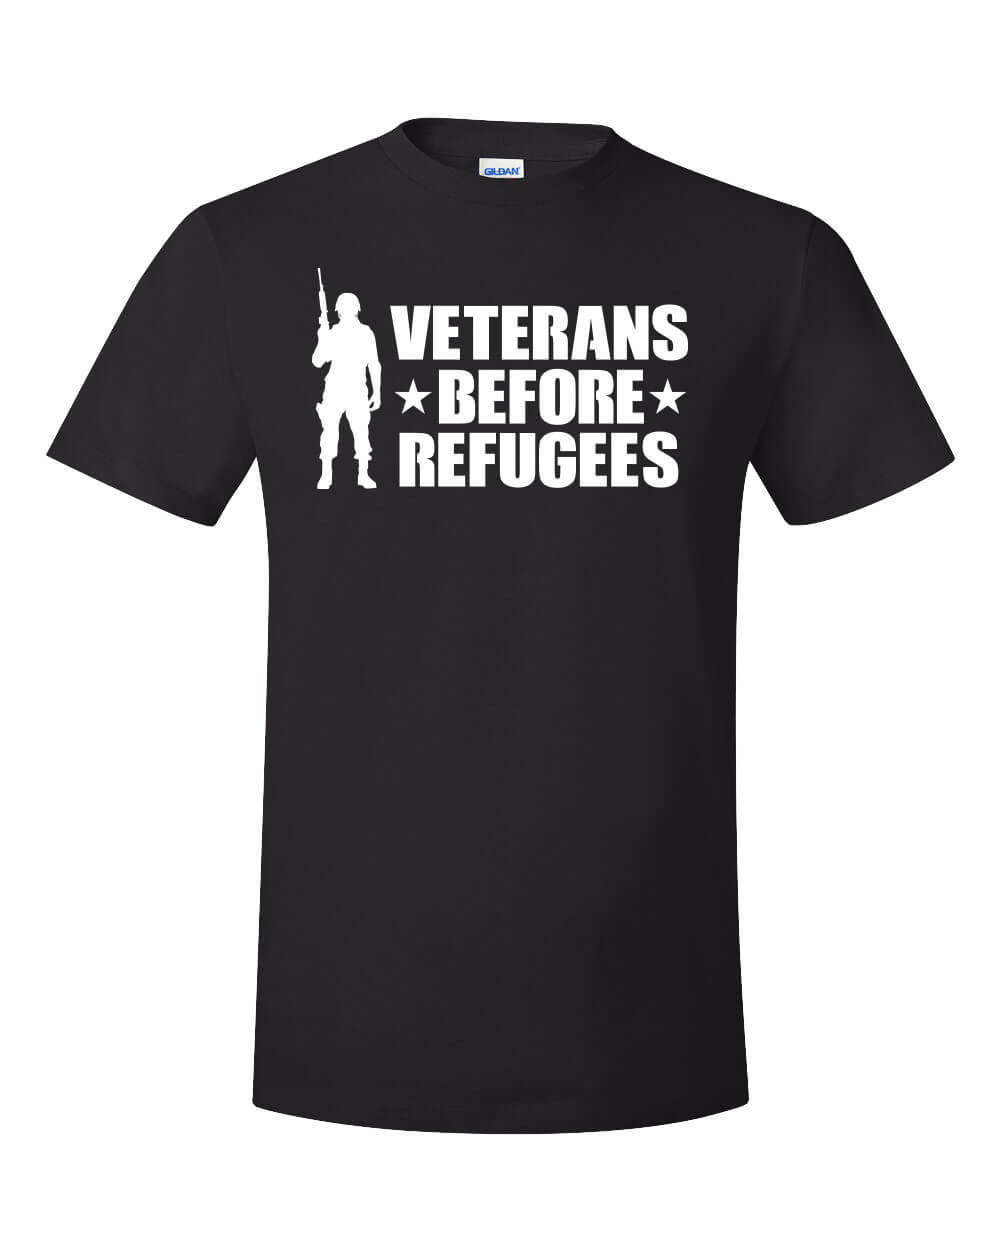 2018 Fashion Summer Style Veterans Before Refugees T-Shirt Trump Military Support Travel Ban Meme USA MAGA Tee Shirt image